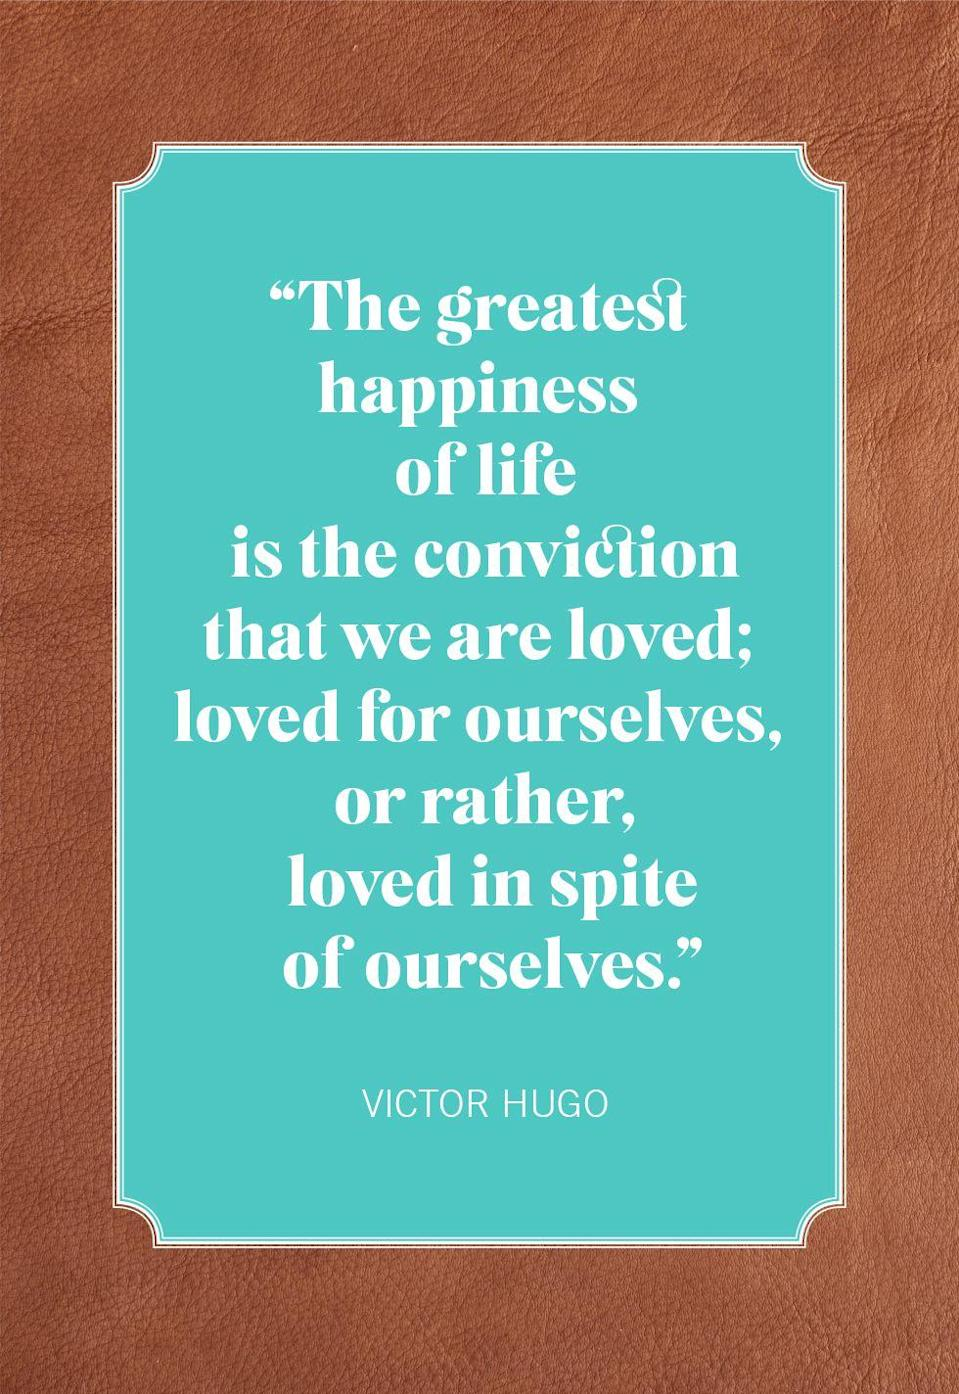 "<p>""The greatest happiness of life is the conviction that we are loved; loved for ourselves, or rather, loved in spite of ourselves.""</p>"